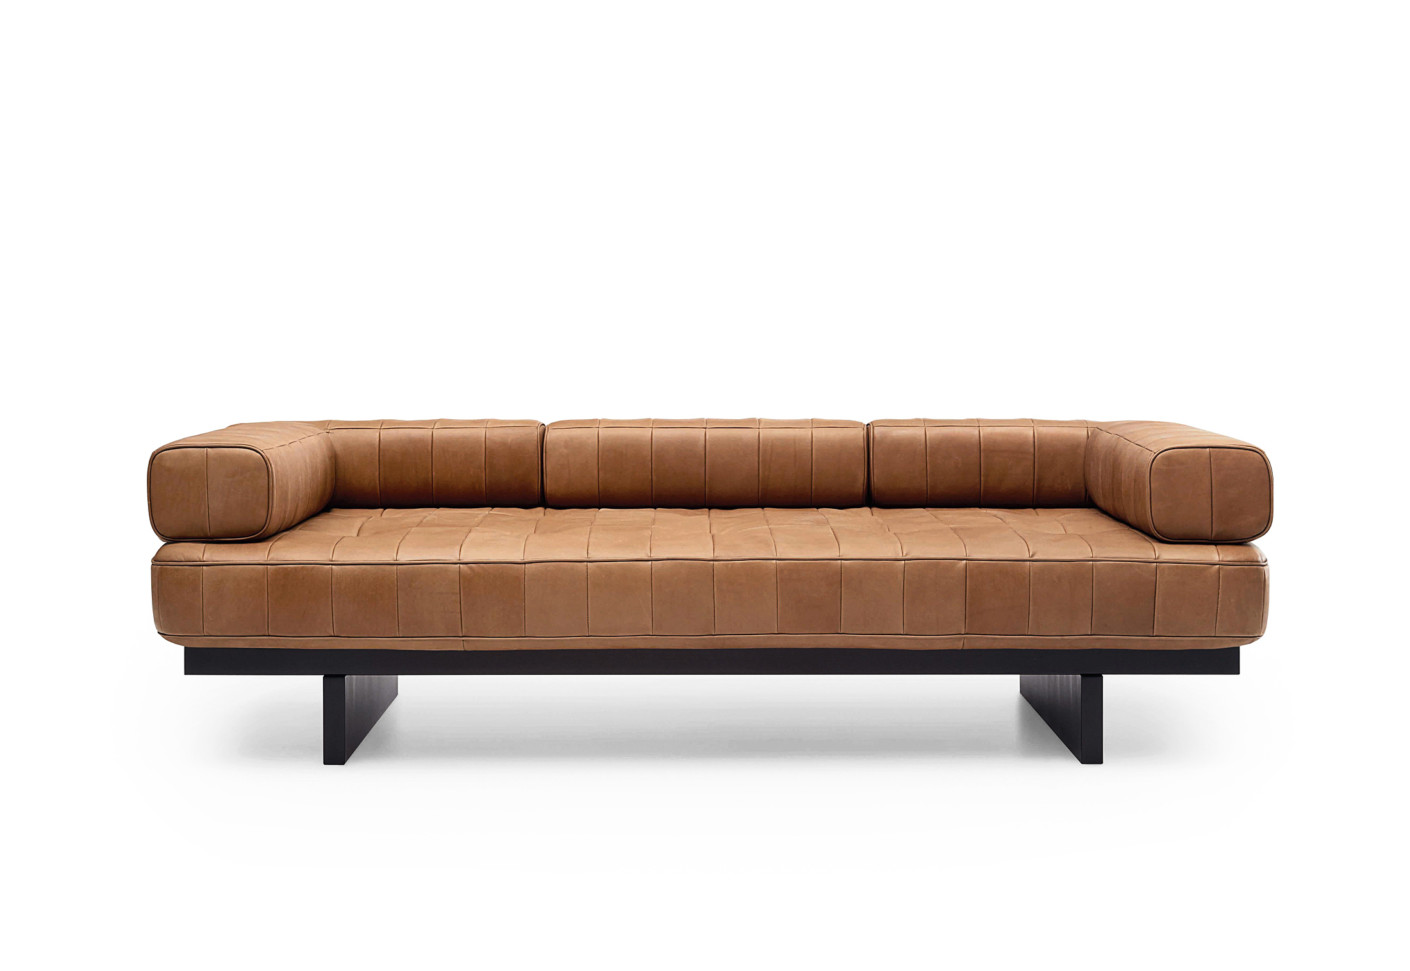 Ds 80 sofa by de sede stylepark for Sofa 1 80 largura